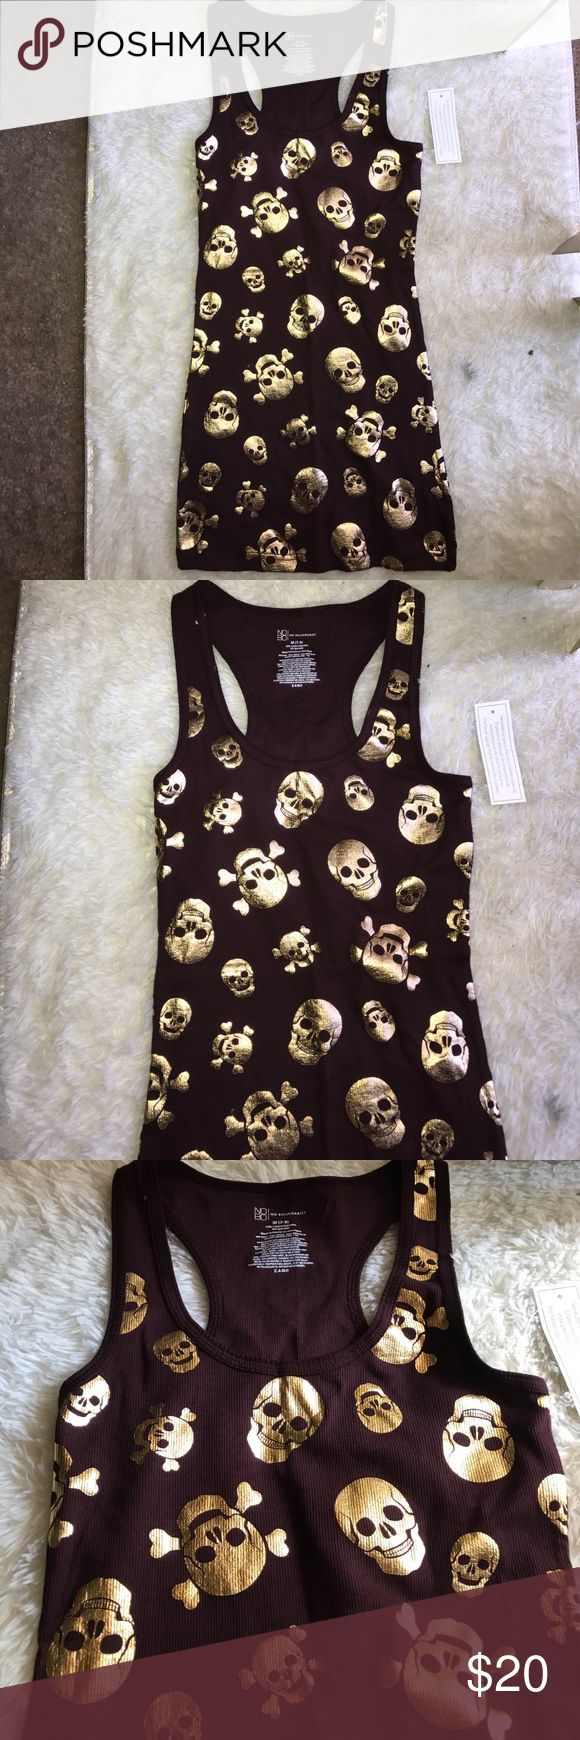 Tank top skulls size M Burgundy size medium 7 to 9 gold skulls. Never worn with tag. No Boundaries Tops Tank Tops